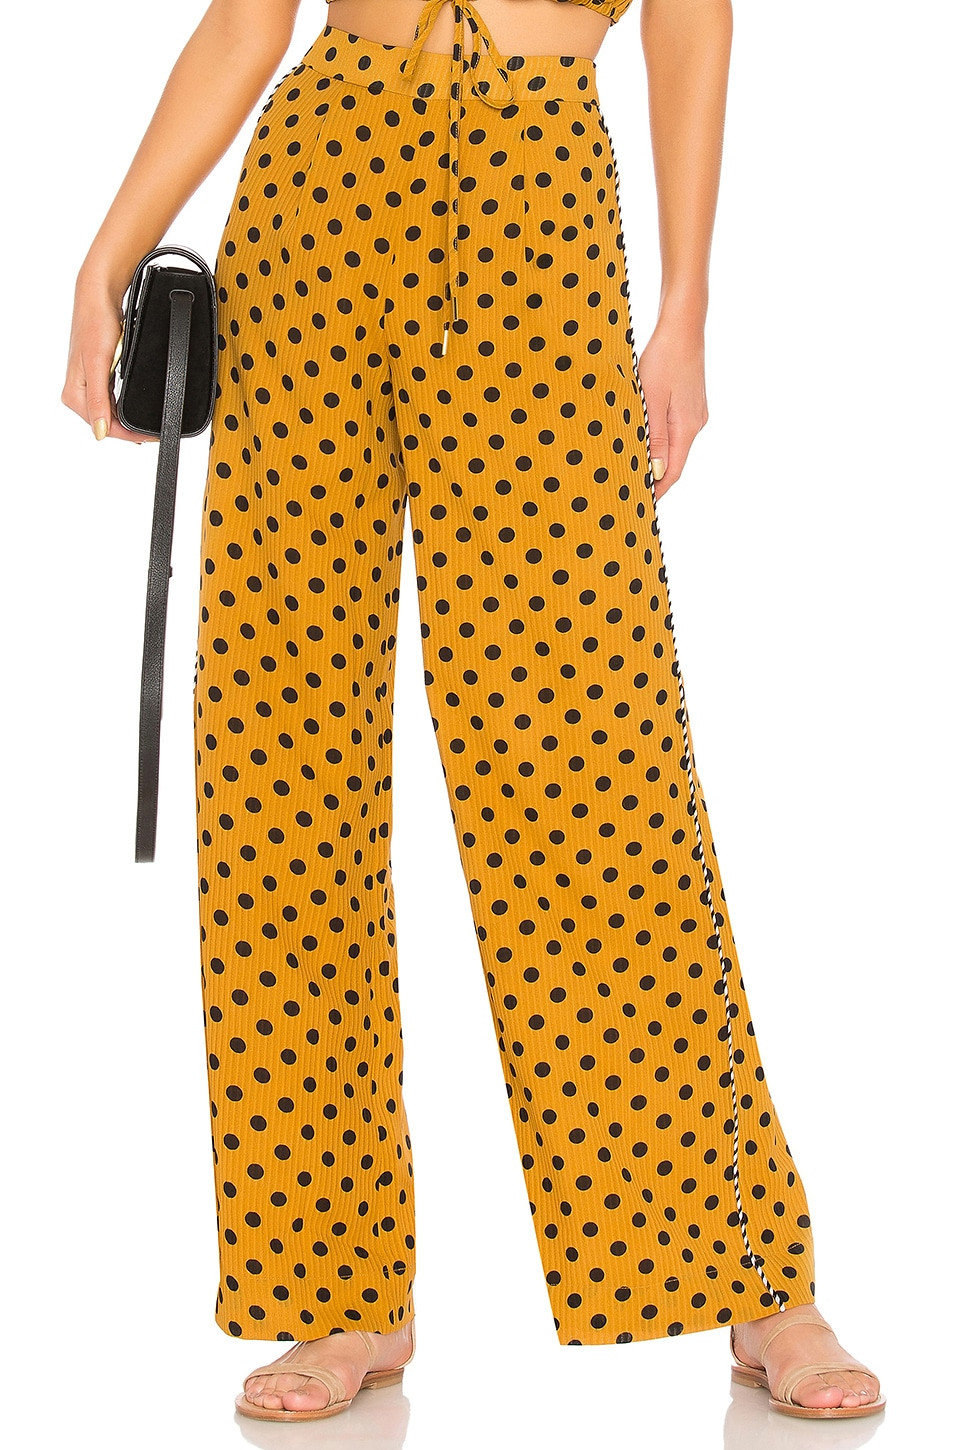 House of Harlow 1960 x REVOLVE Leo Pant in Saffron Polka Dot